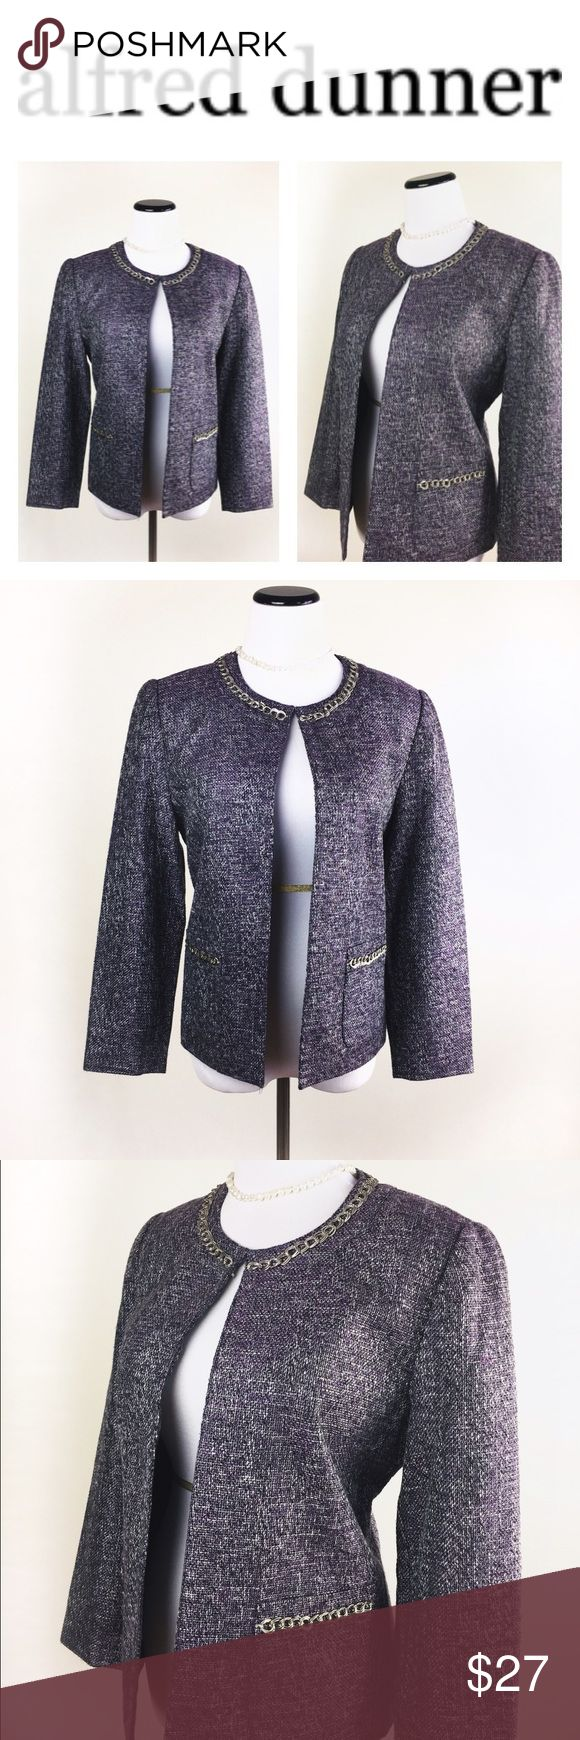 ALFRED DUNNER TWEED PURPLE AND SILVER BLAZER SZ12 Elegant Alfred Dunner tweed purple and silver blazer in size 8p. Pre owned, no holes or stains. Has the look and feel of pre owned. Looks great! Questions? Ask me 💖😉 Alfred Dunner Jackets & Coats Blazers